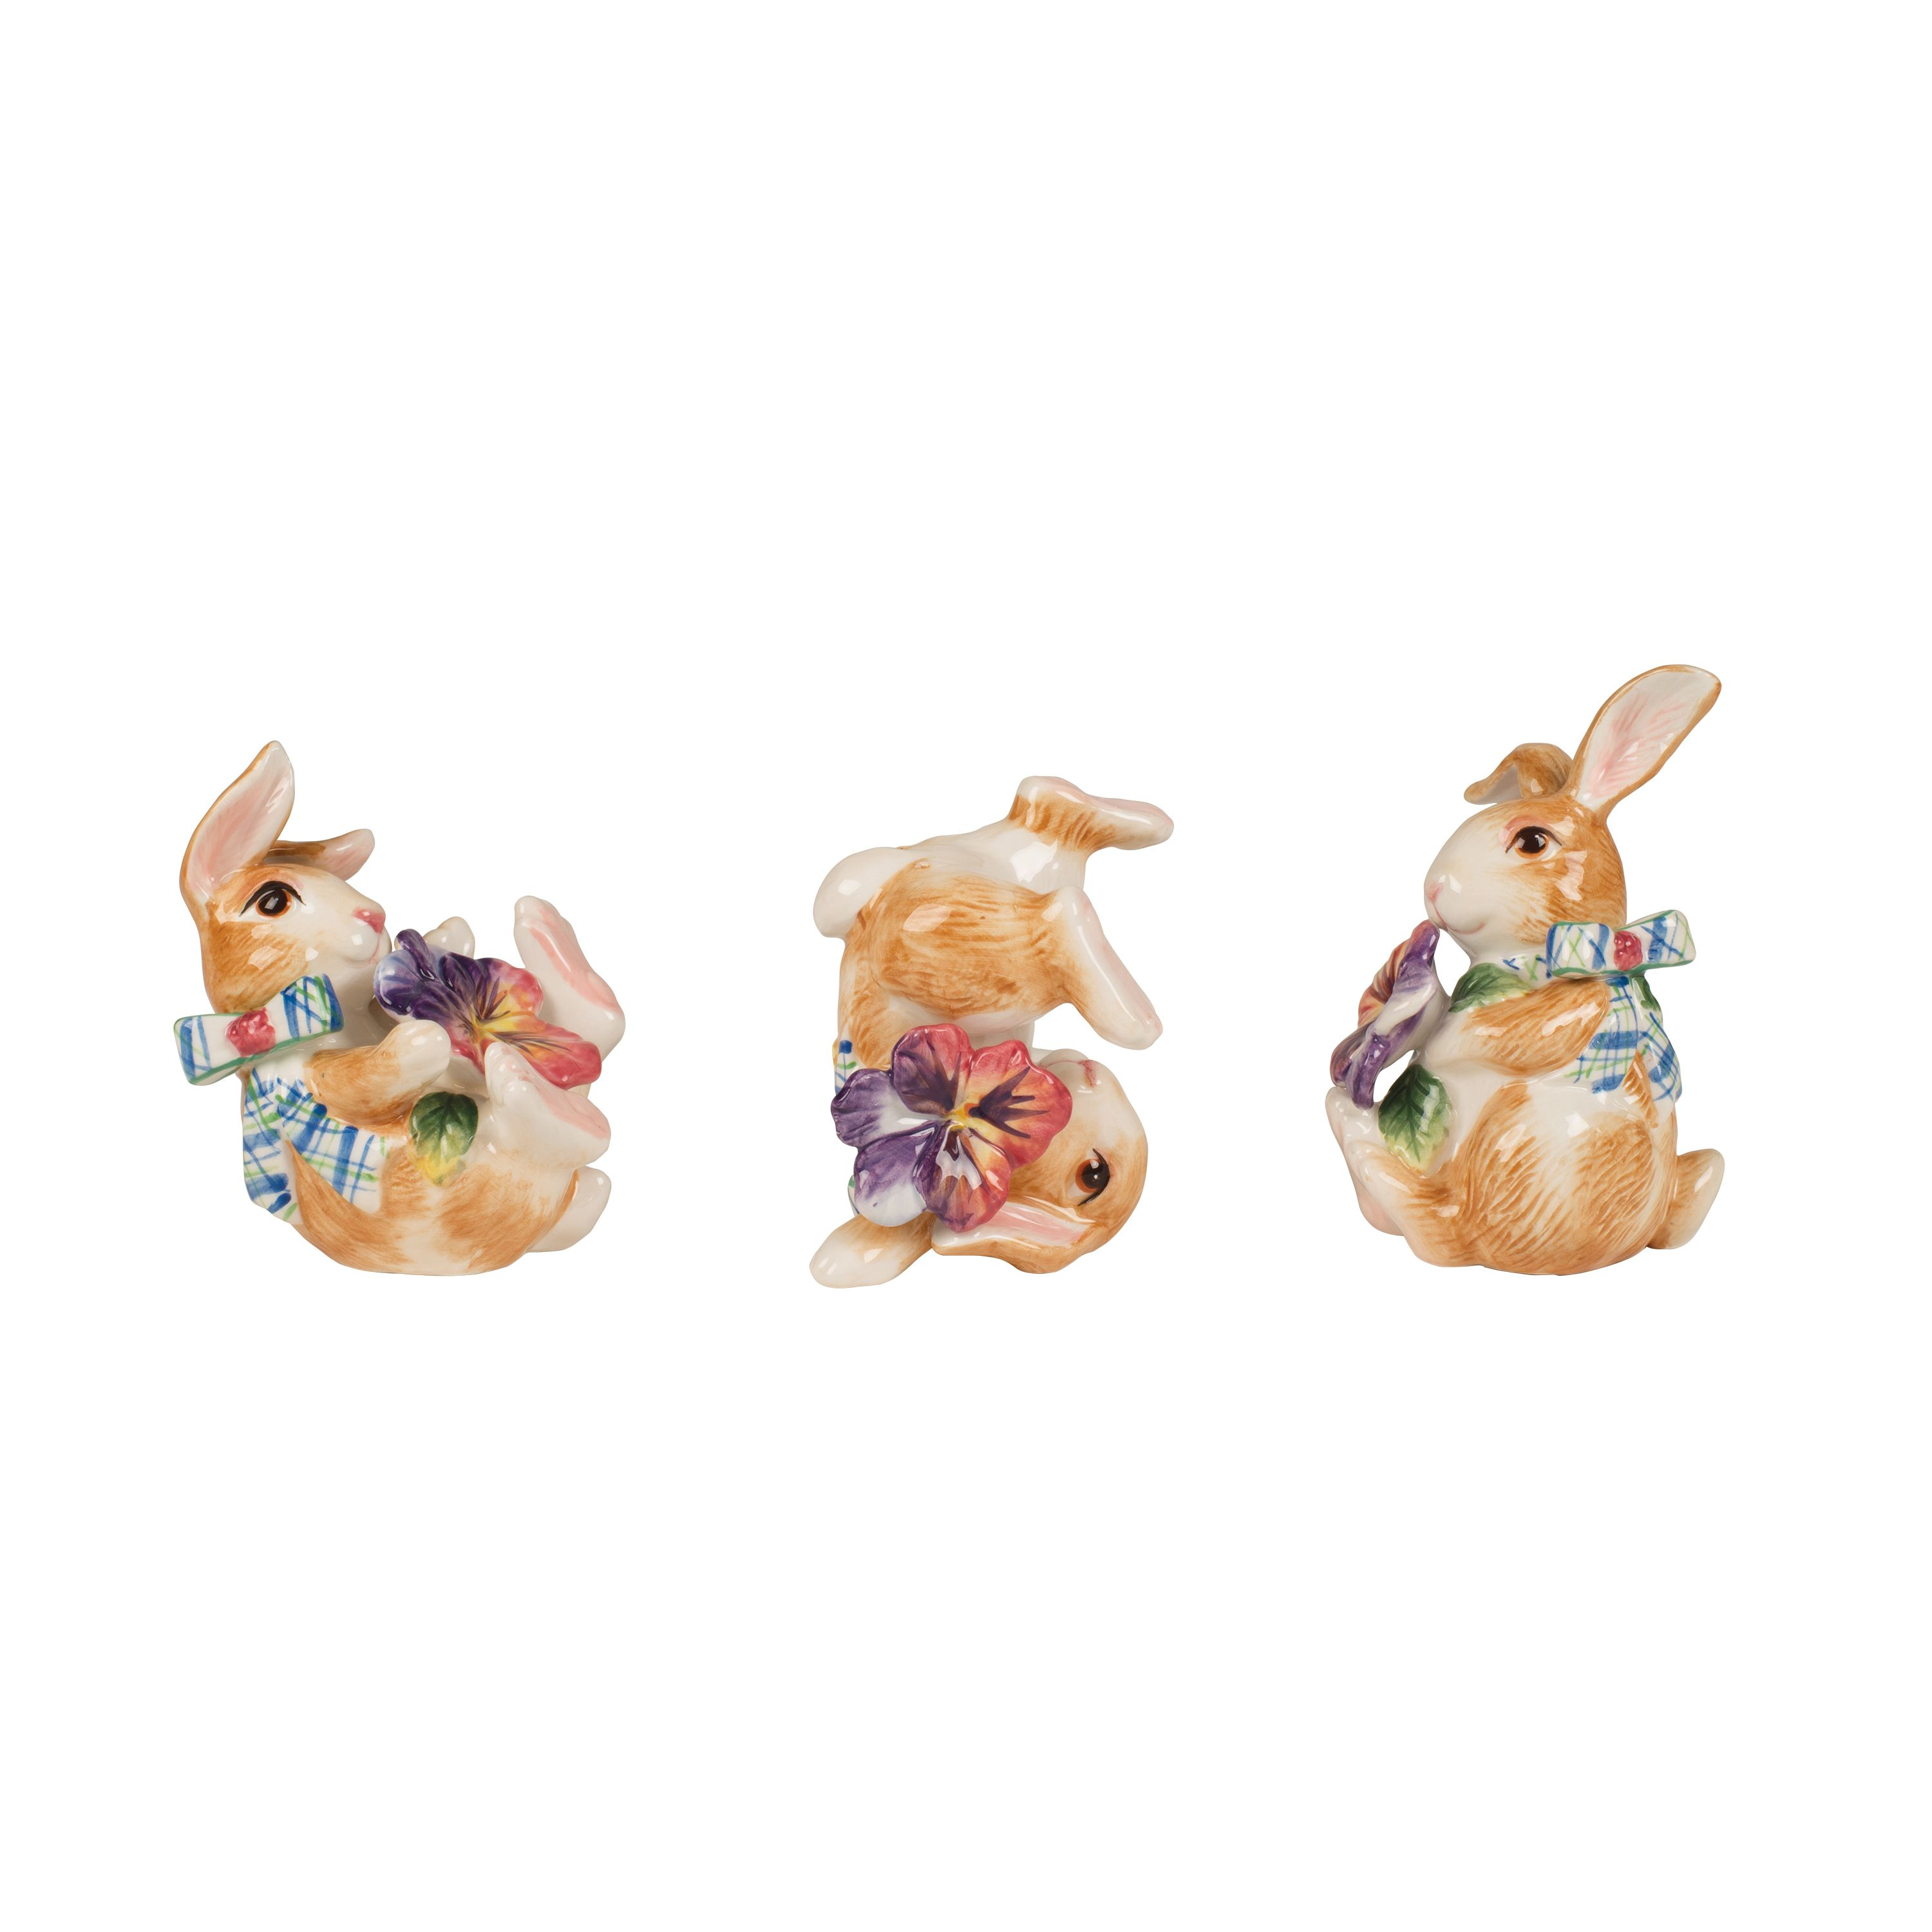 Halcyon Bunny Tumblers, Set Of 3 Easter Bunnies   Fitz and Floyd